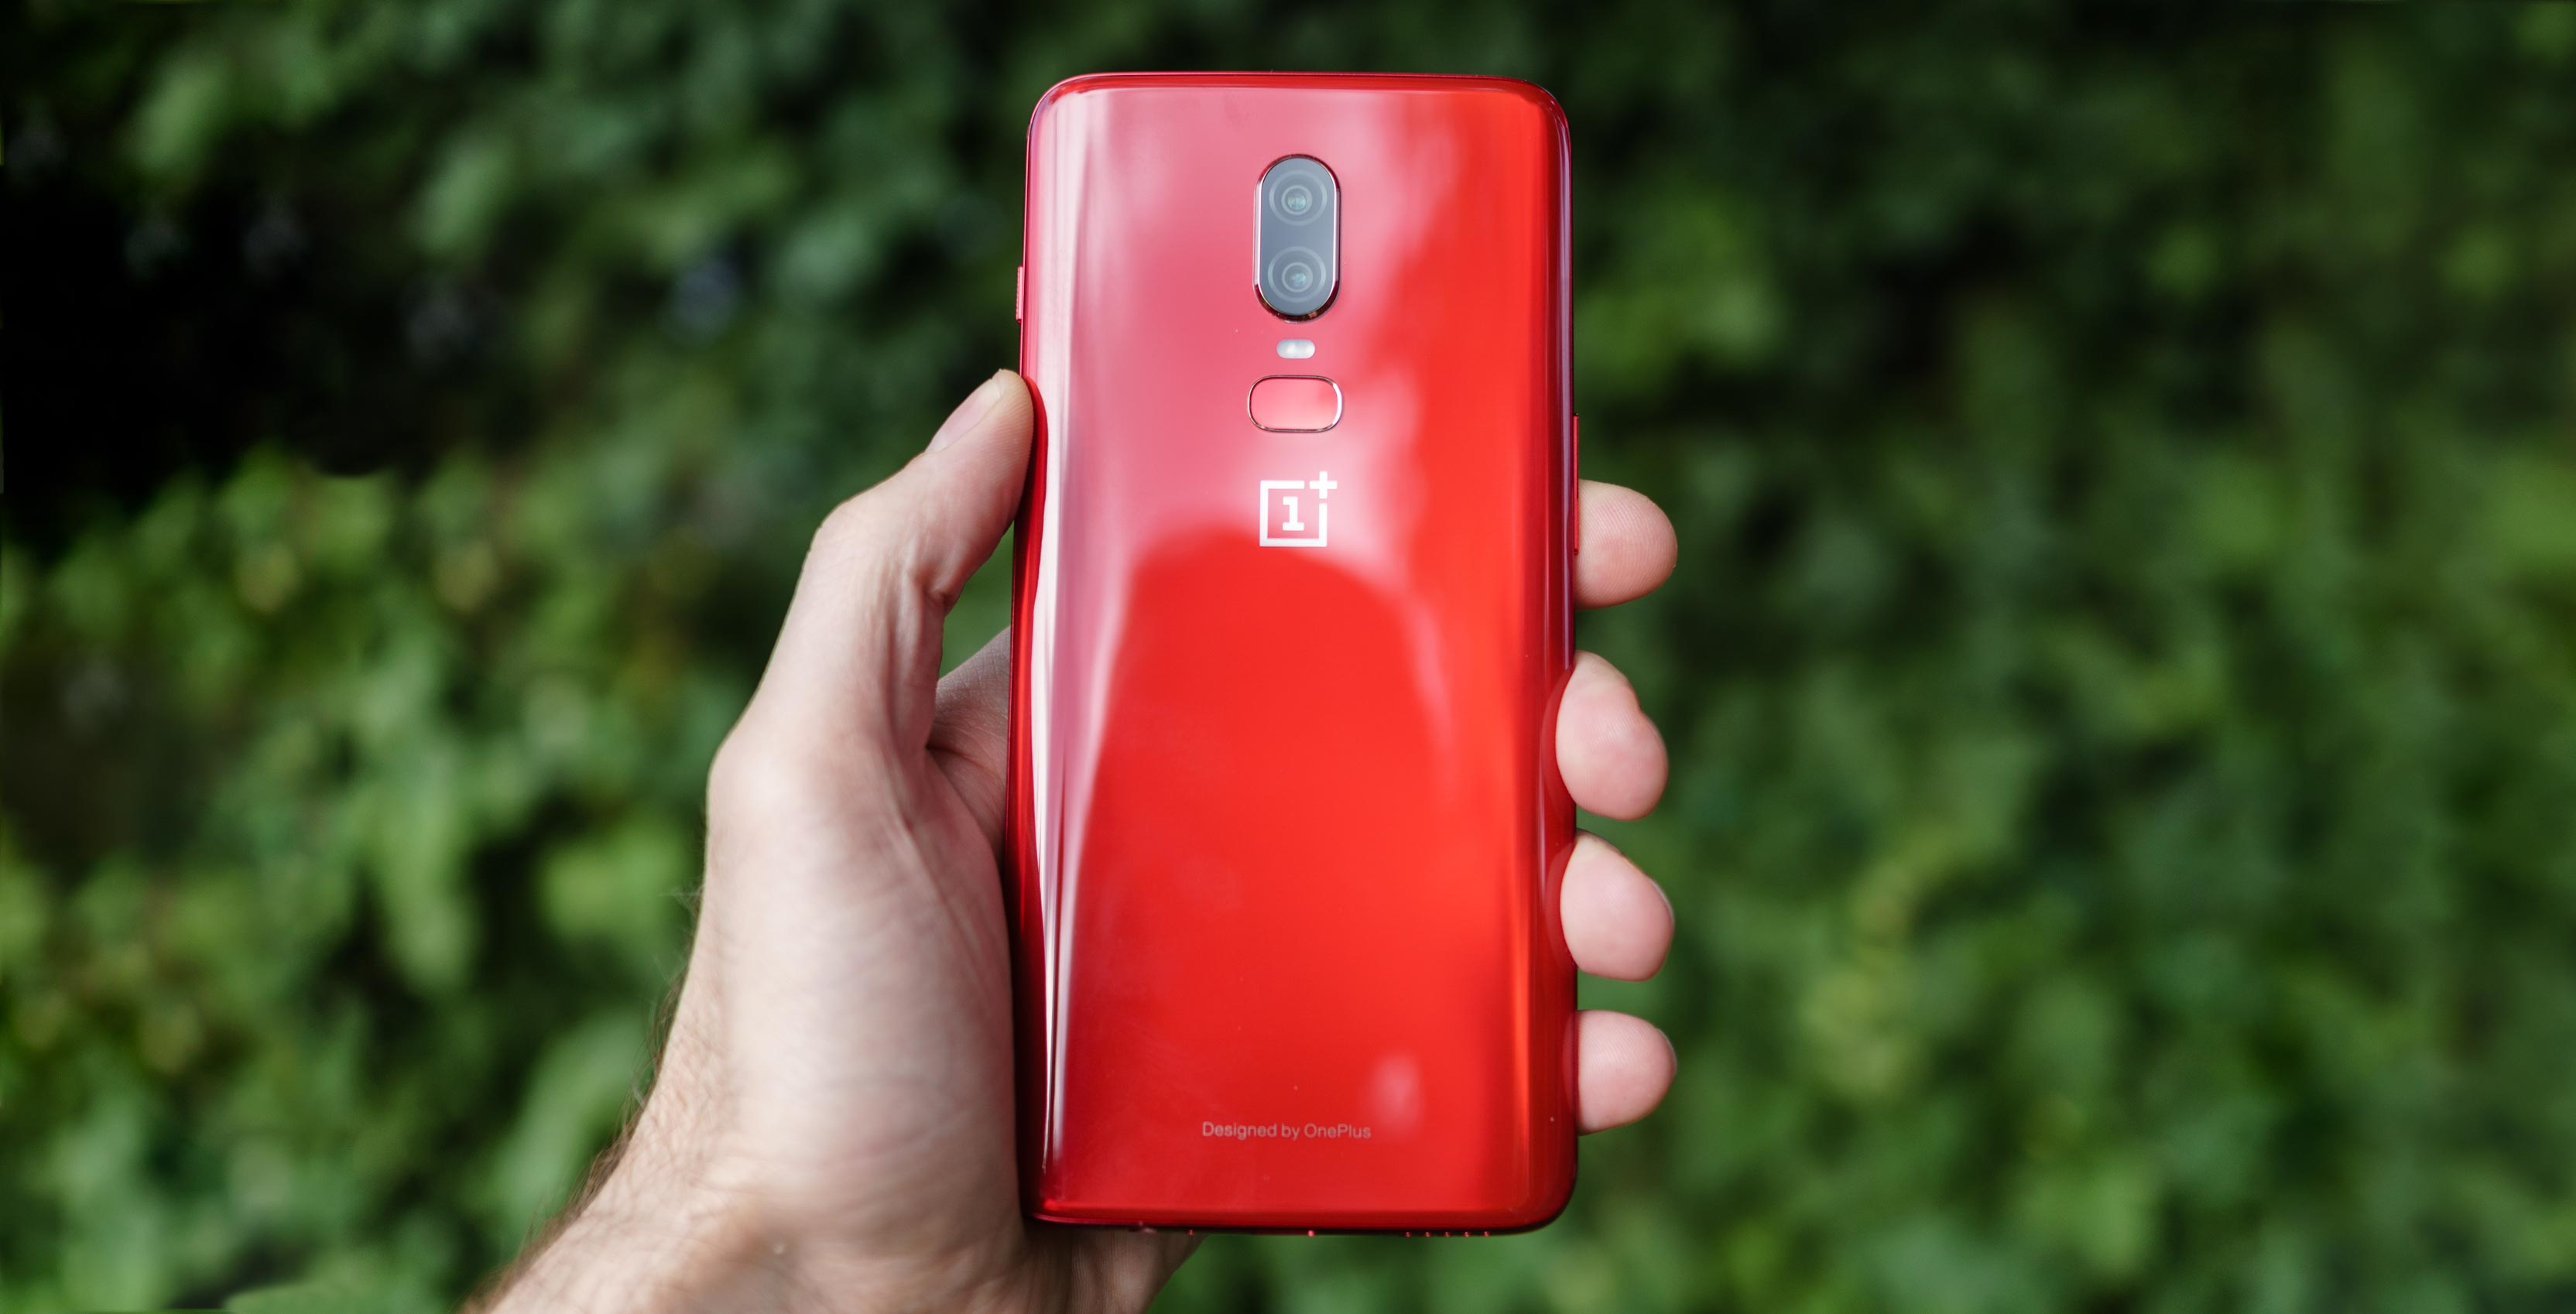 OnePlus 6T may work on Verizon's network